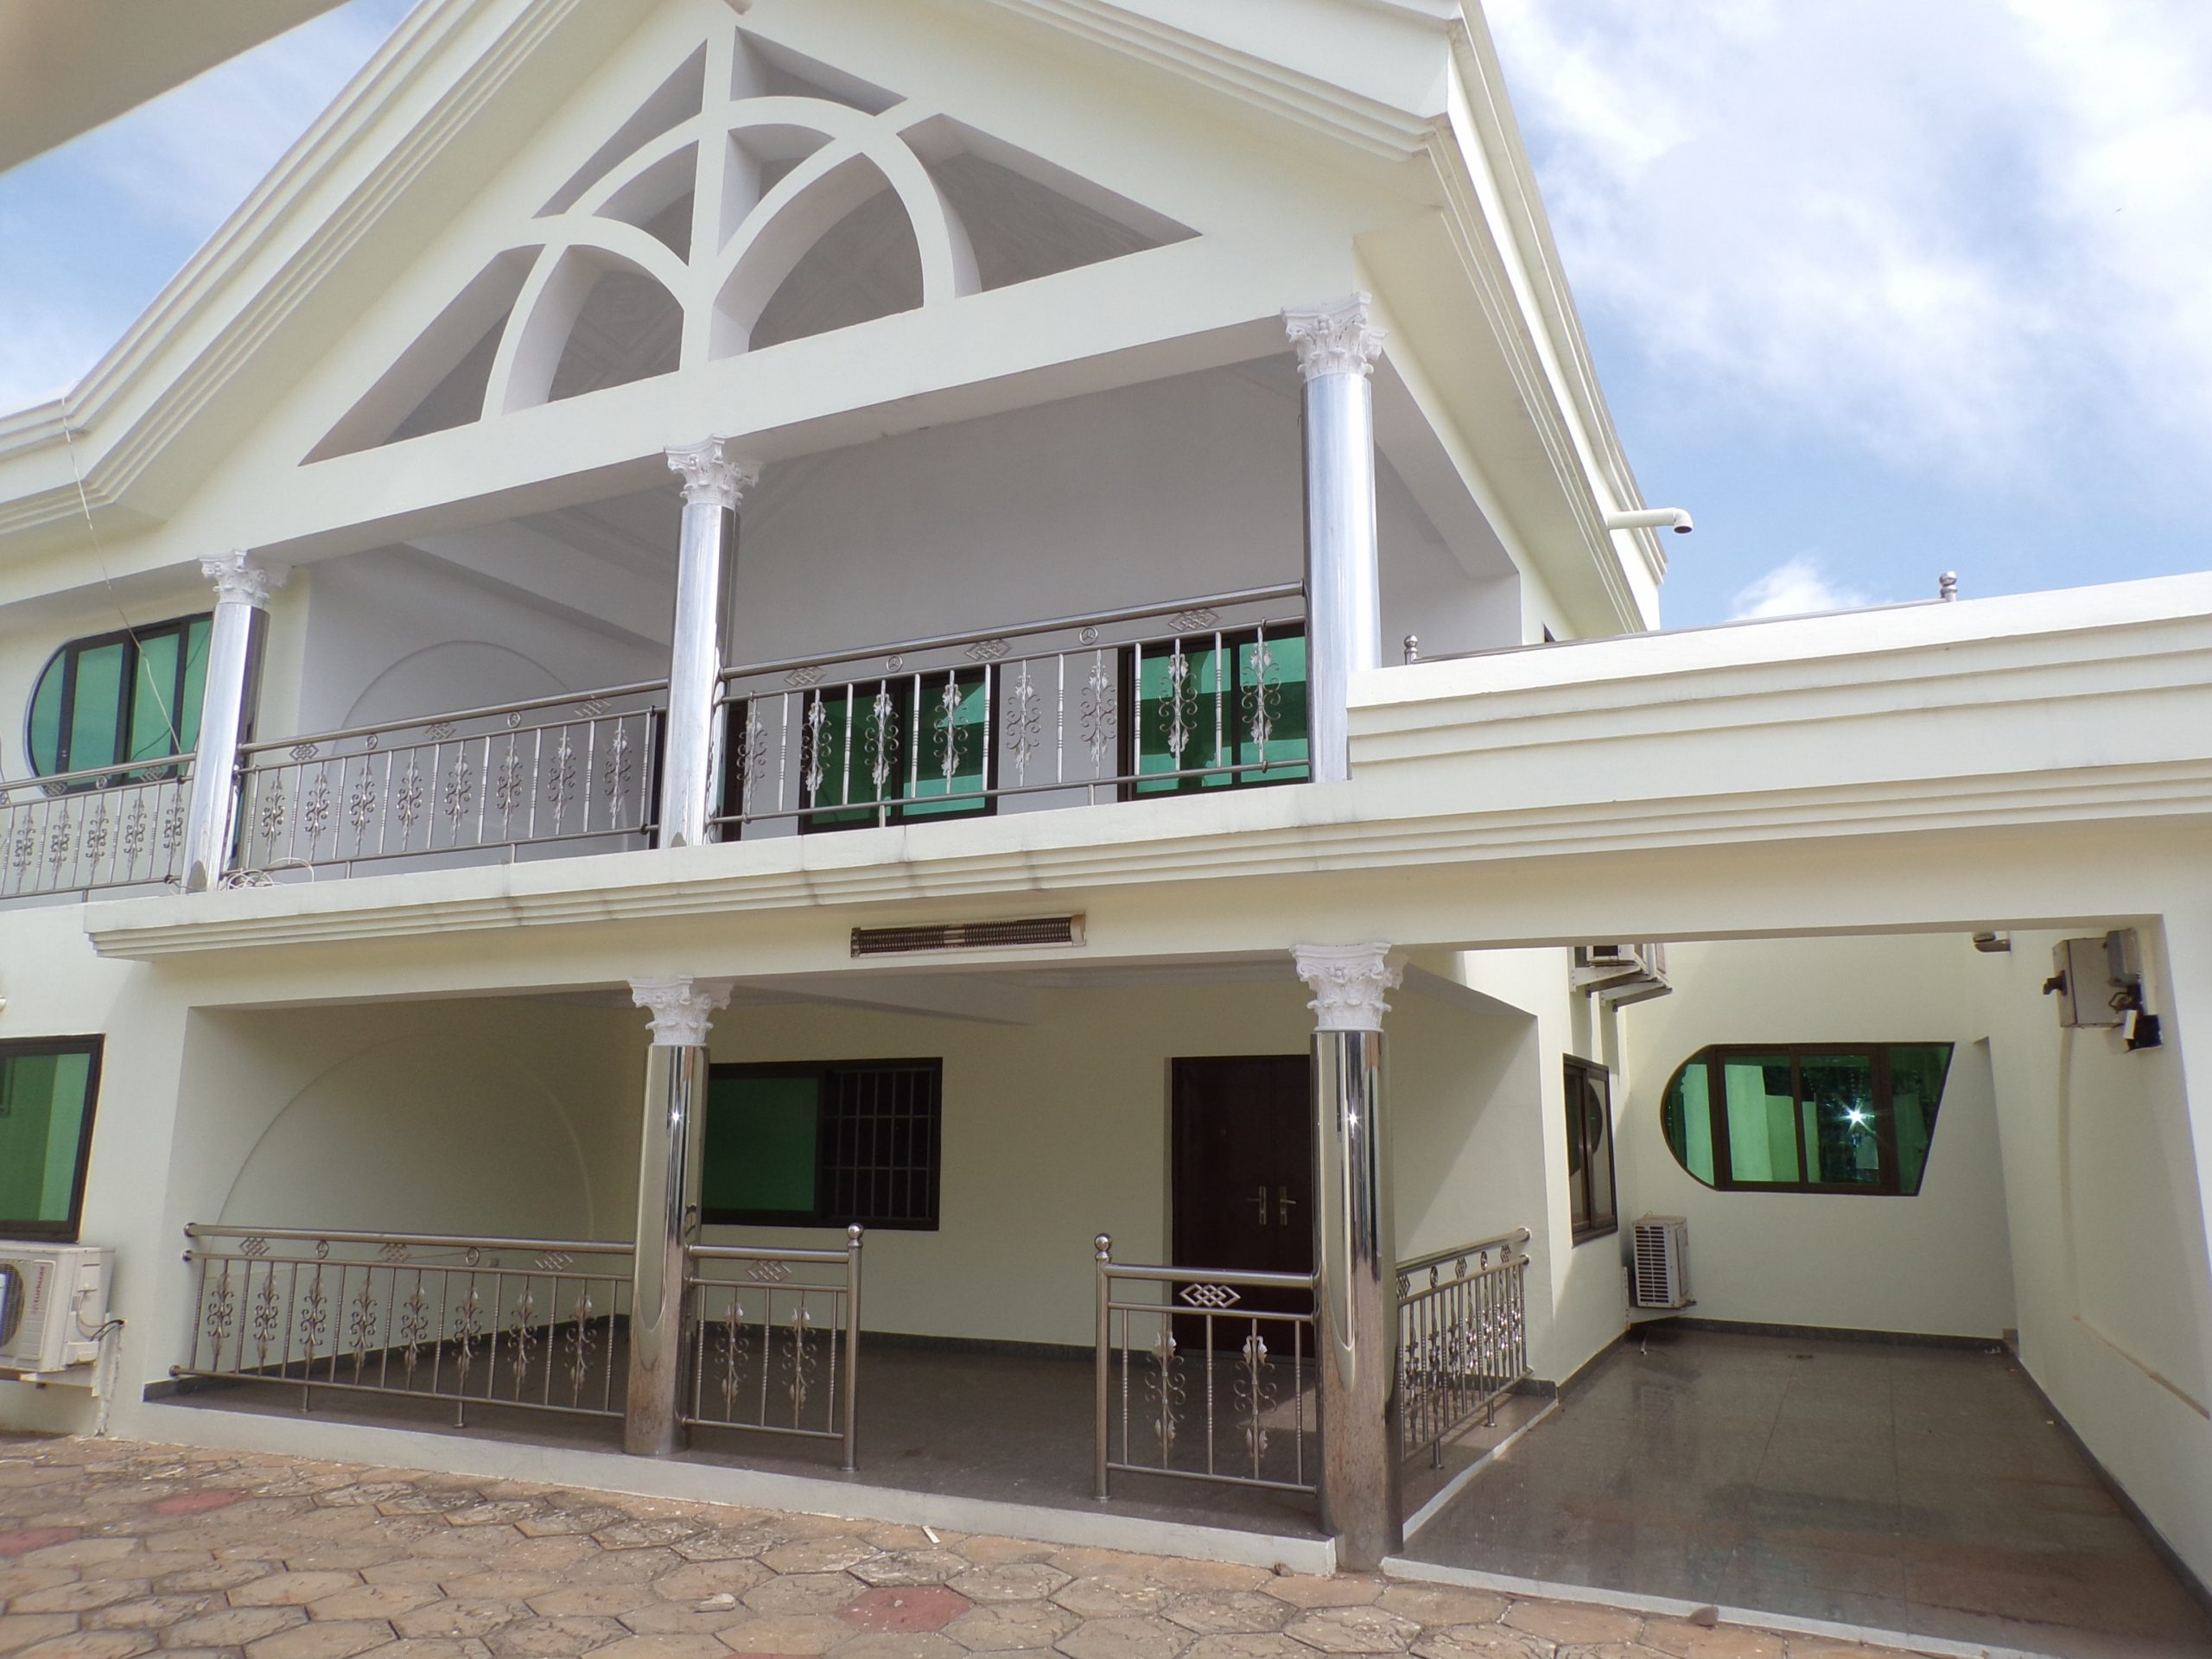 Office Space for Rent in Adjiringanor